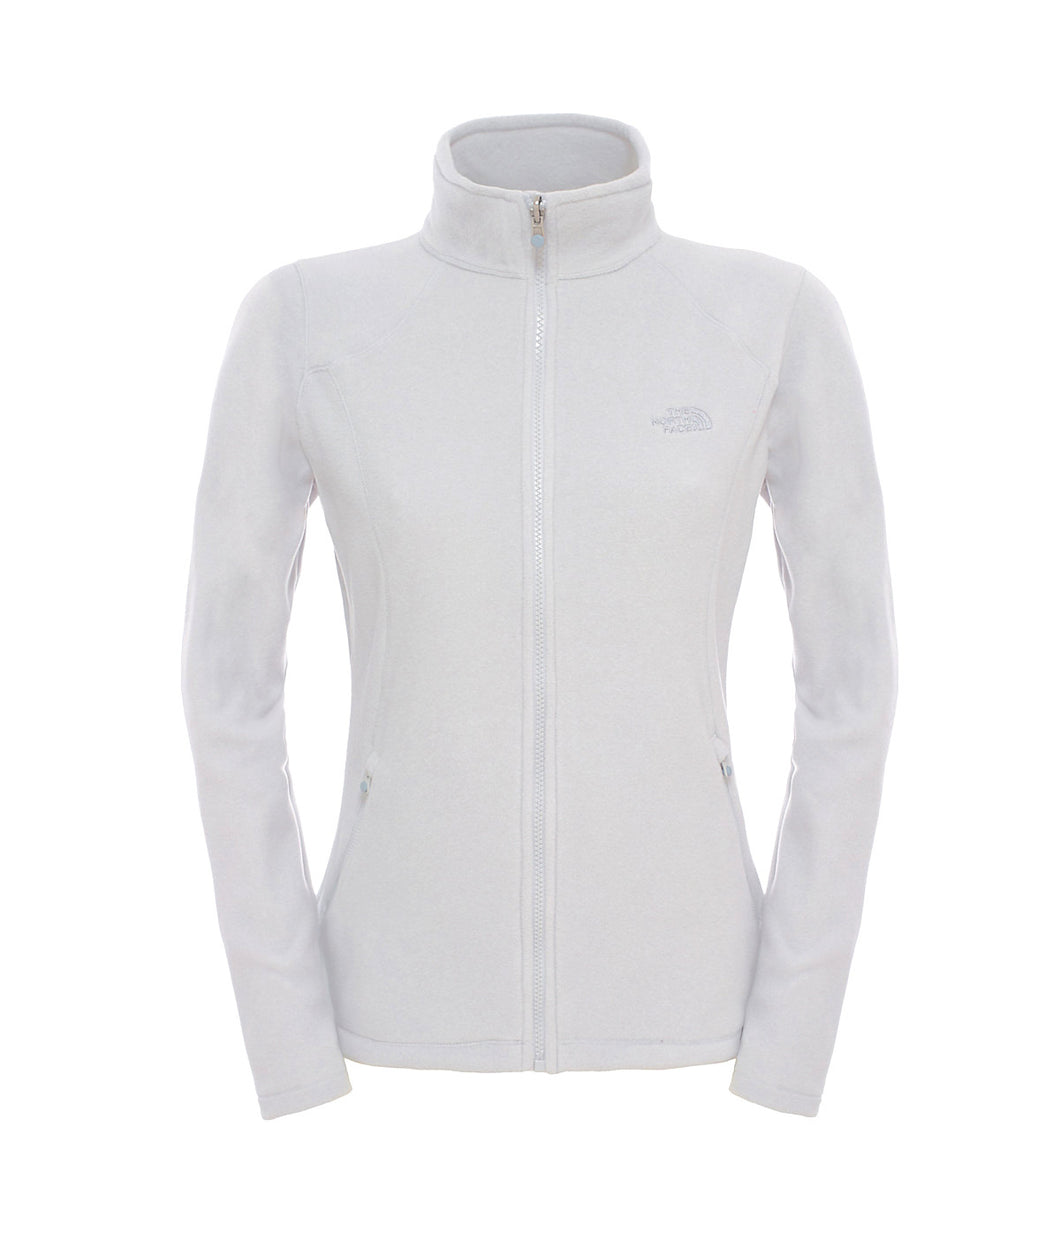 The North Face 100 Glacier Full Zip Jacket Vintage White